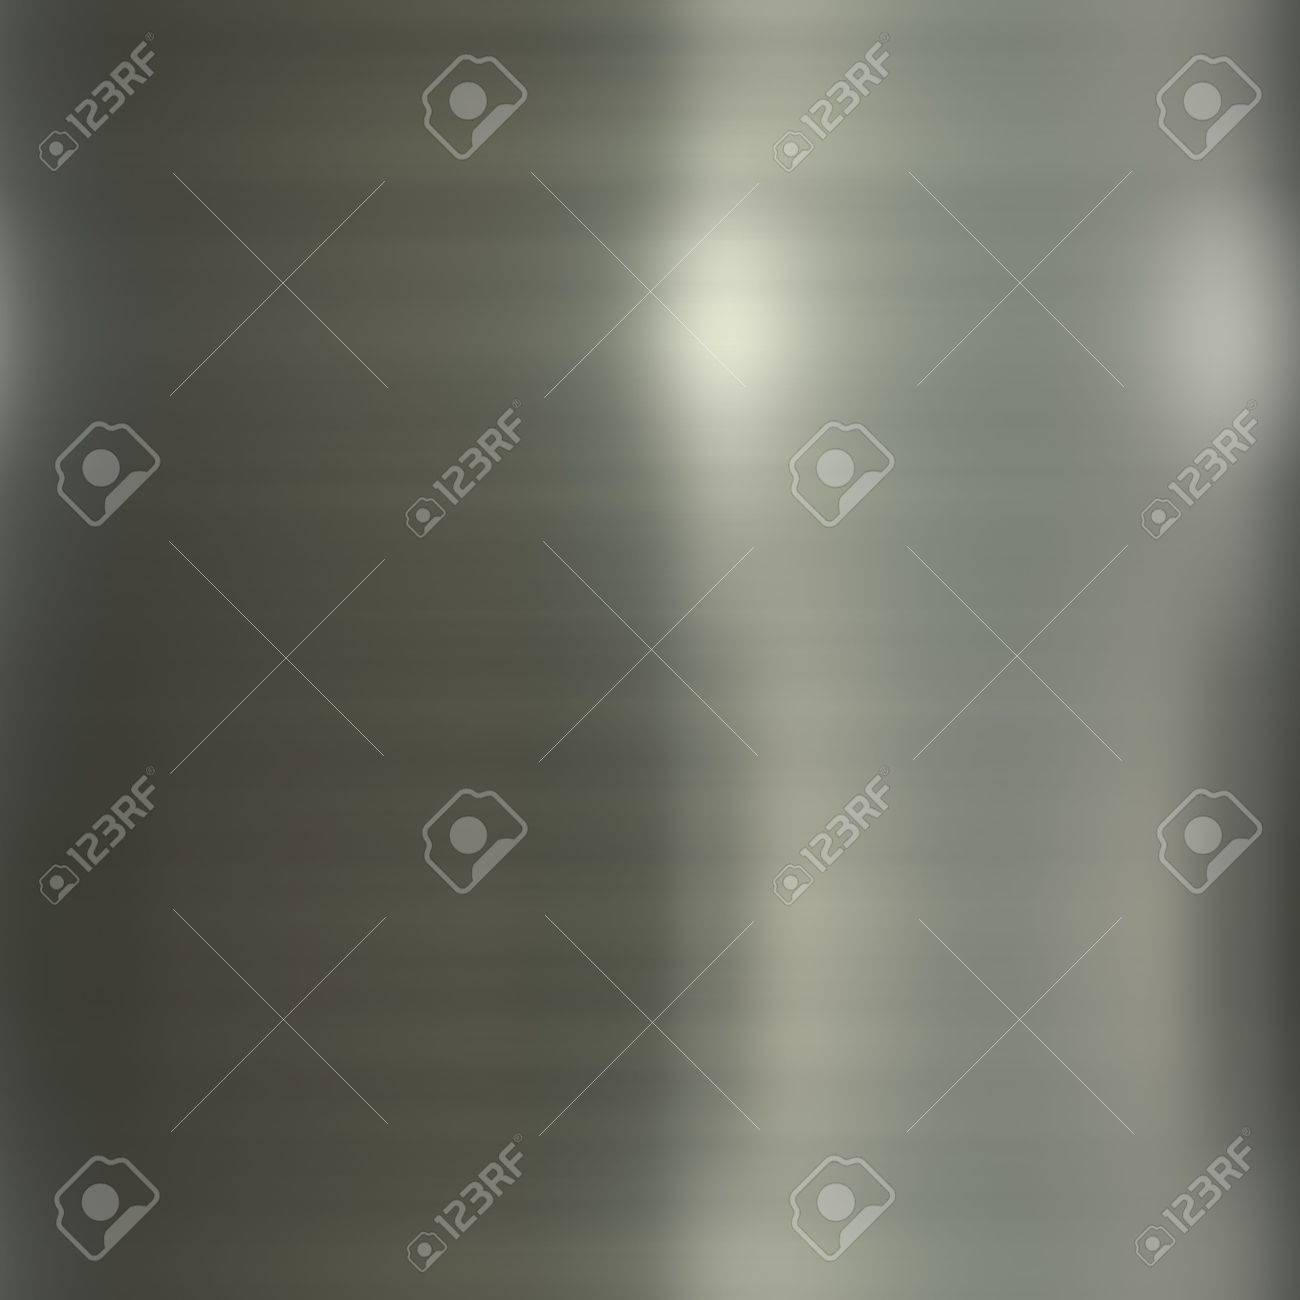 Brushed smooth glossy metal surface texture background illustration Stock Illustration - 3480733